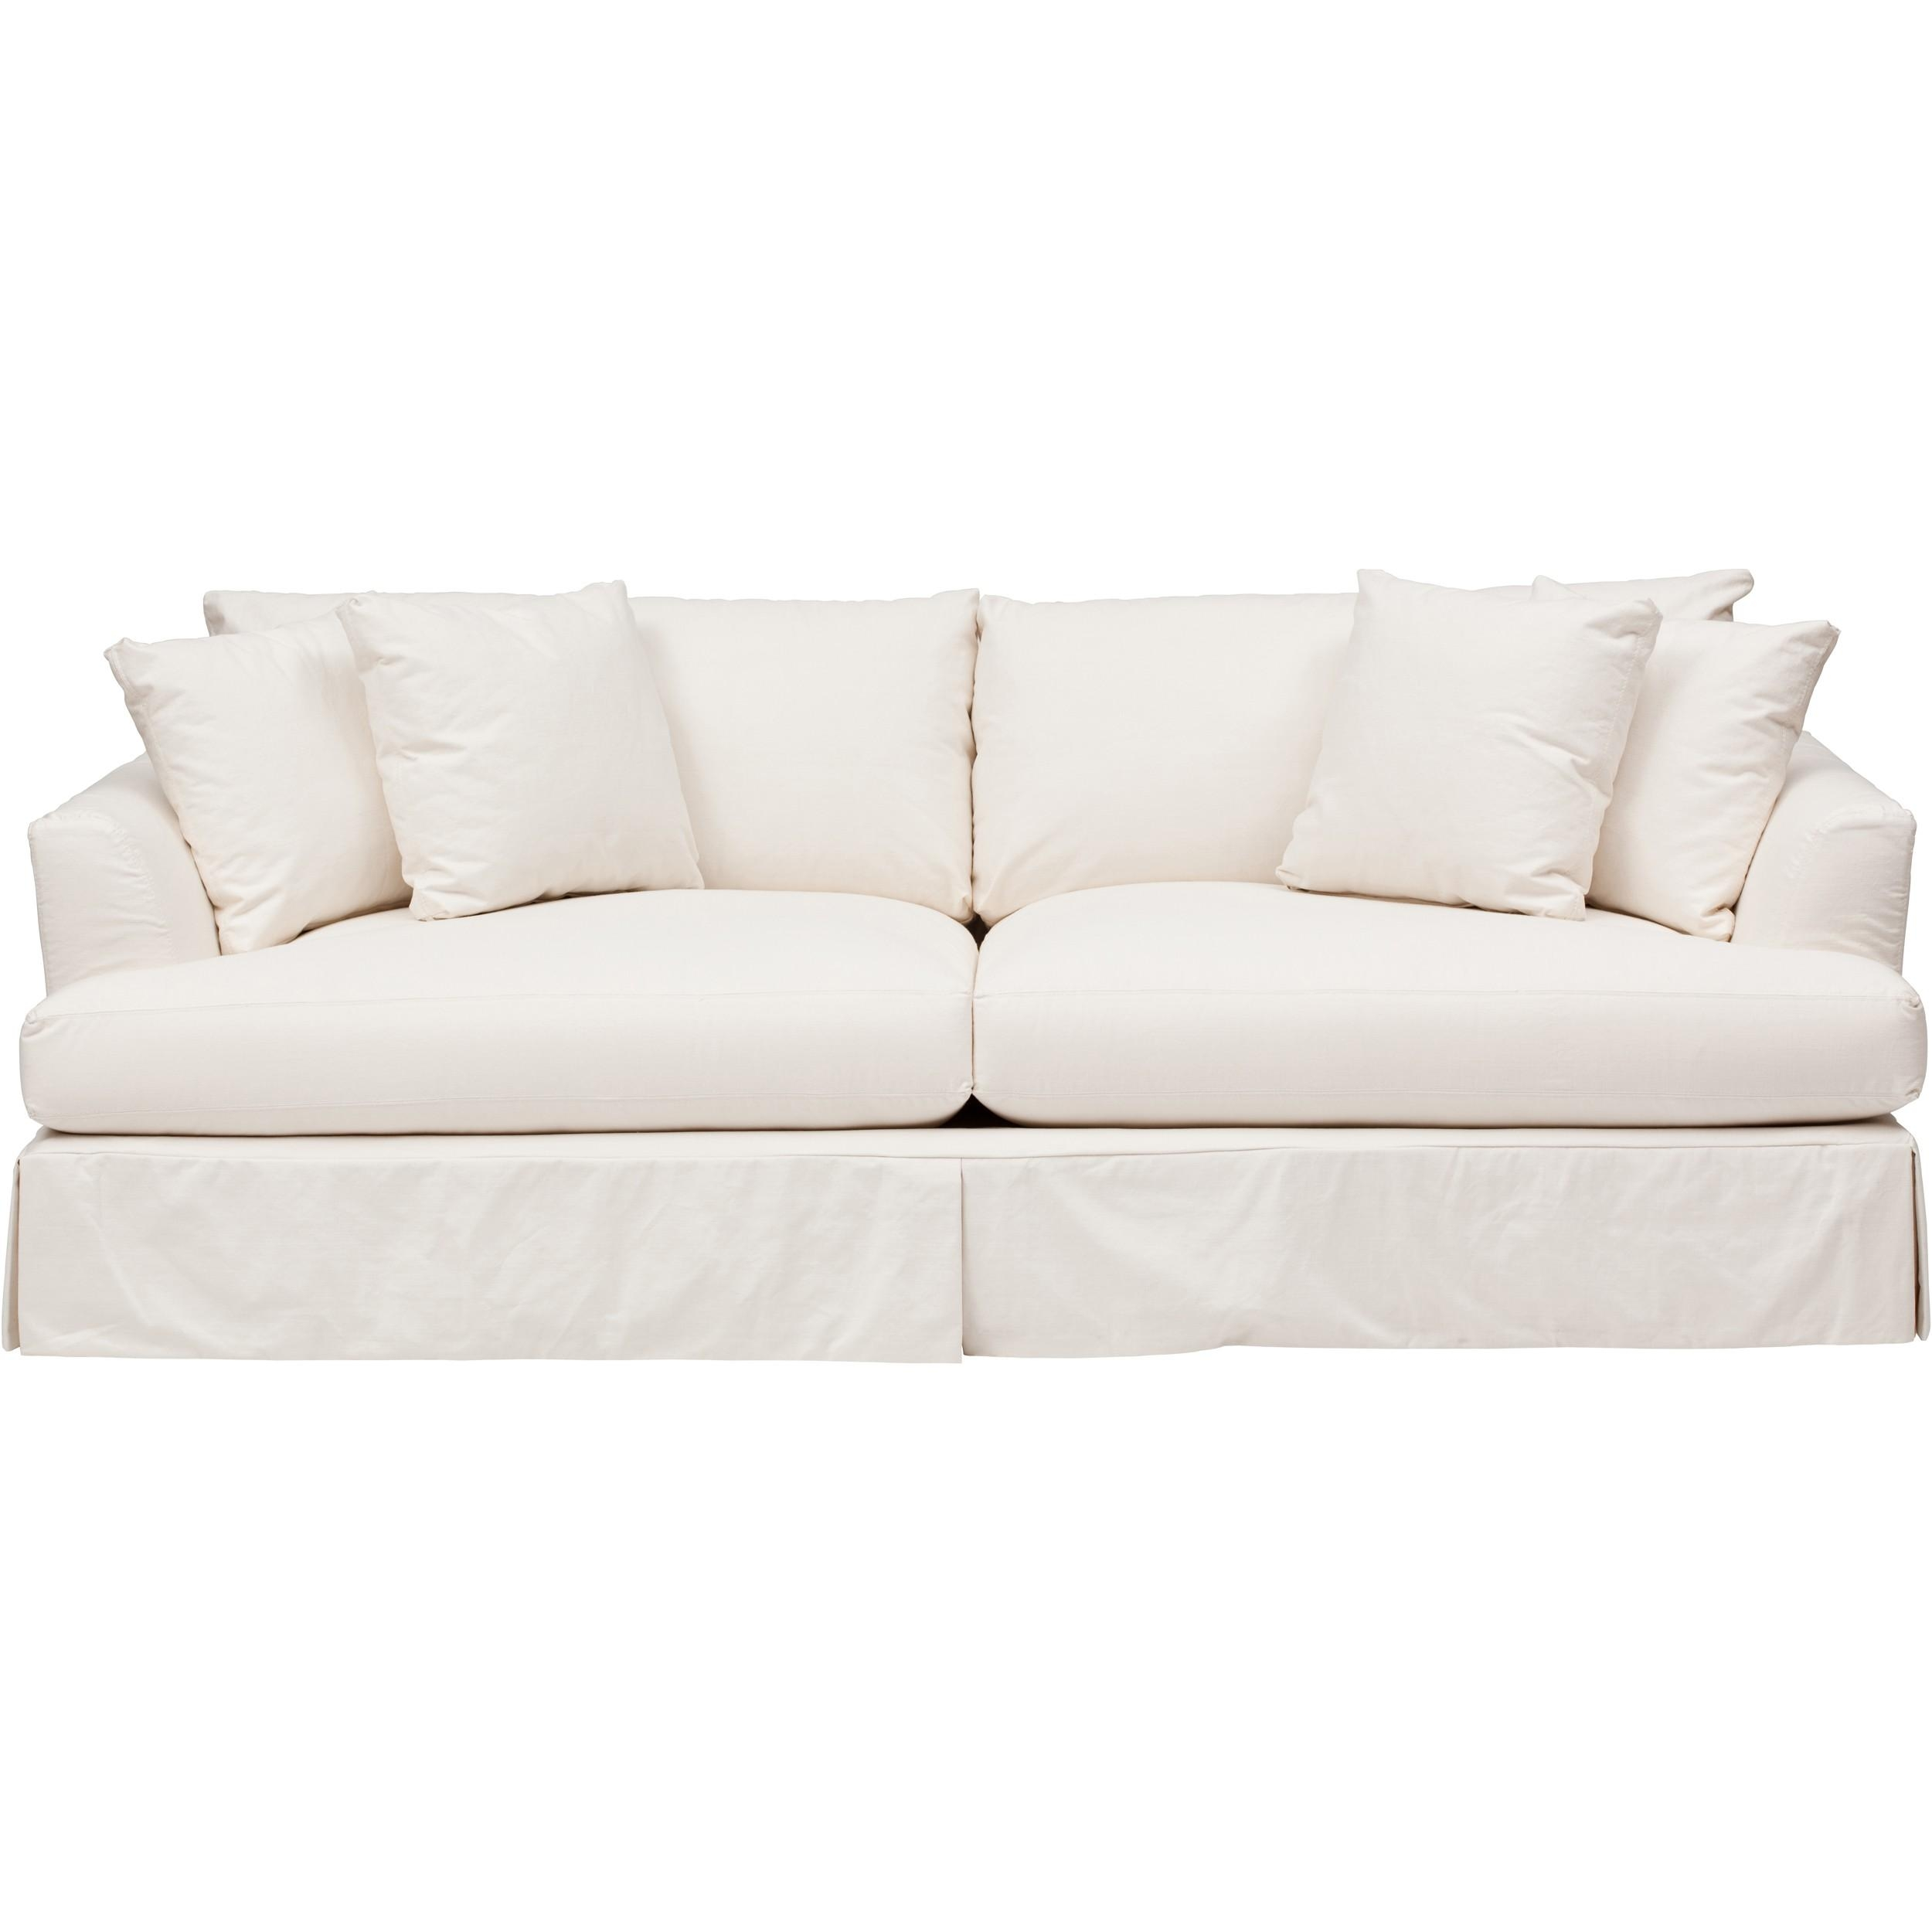 Furniture: Linen Couch Slipcovers | Slipcovers For Couch | Sofa Pertaining To Slipcovers For Sofas And Chairs (Image 14 of 20)